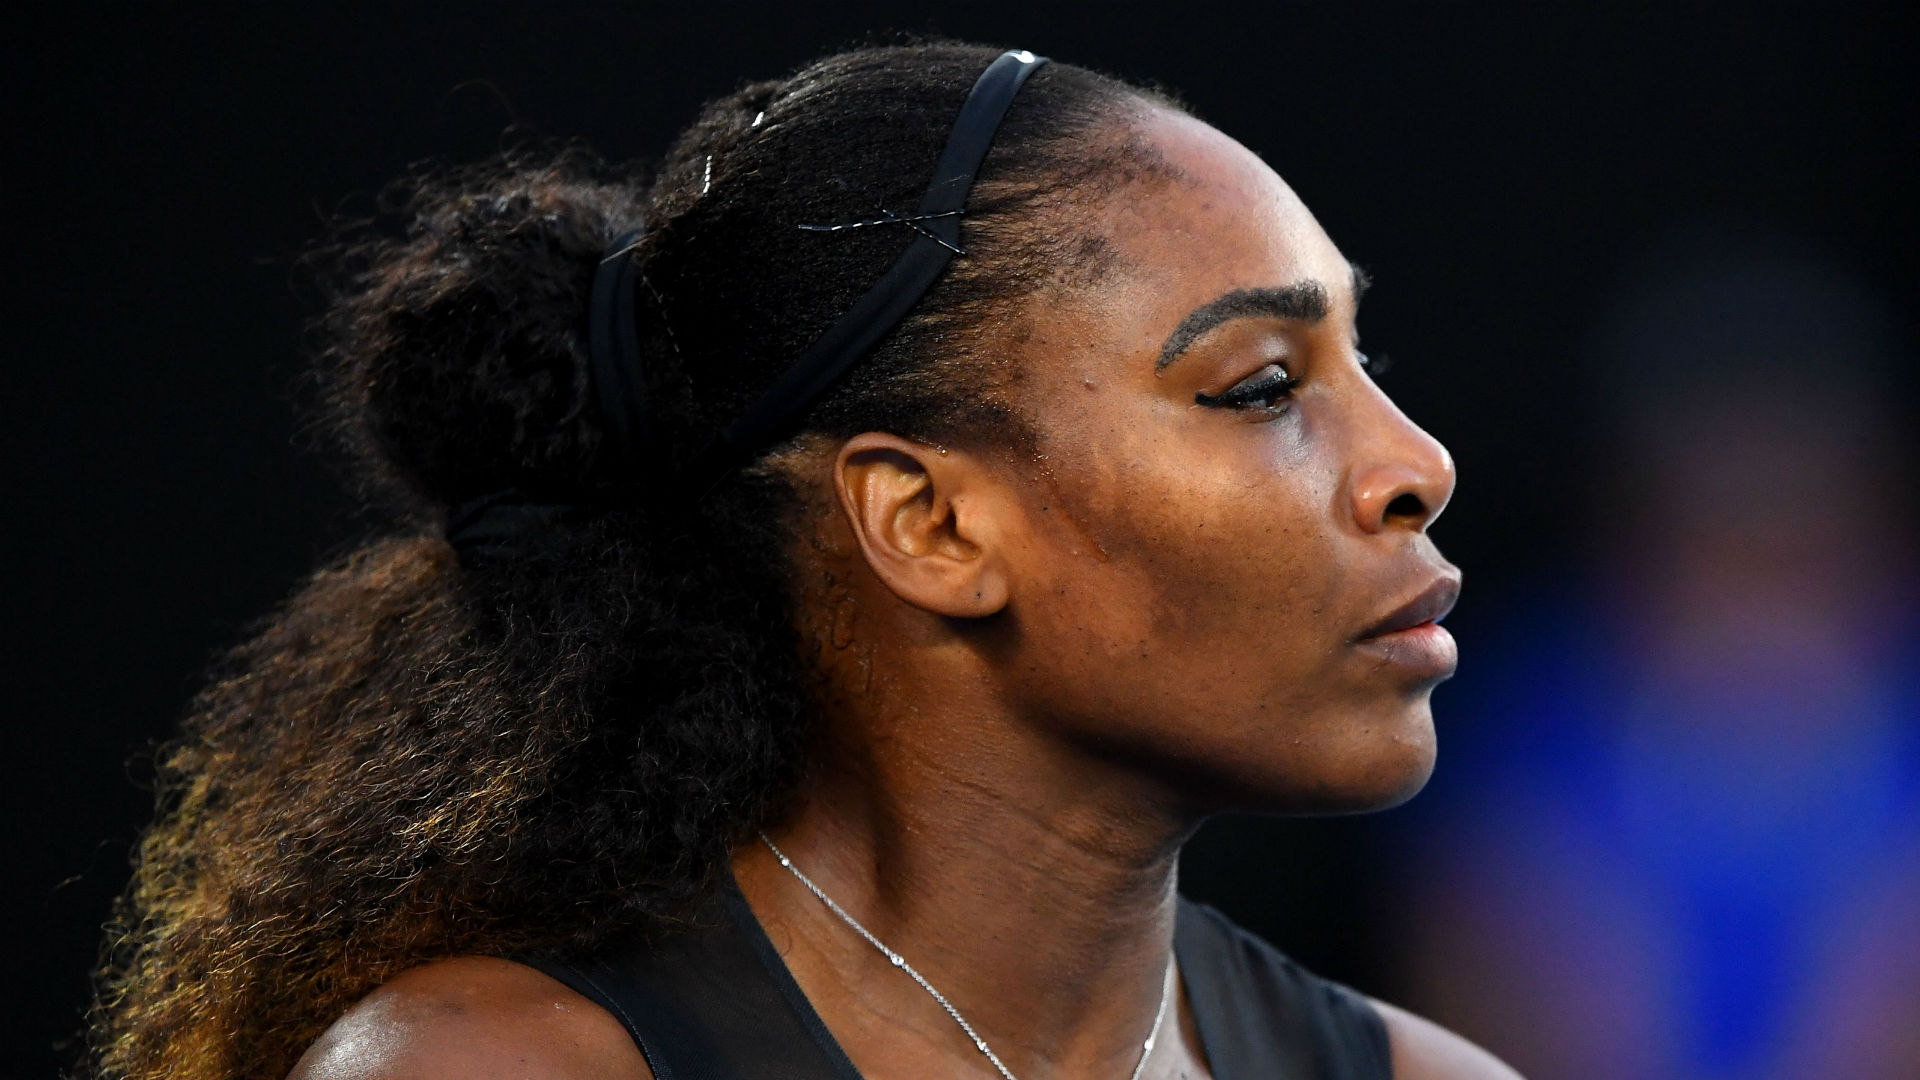 Serena Williams reveals she had blood clots after giving birth